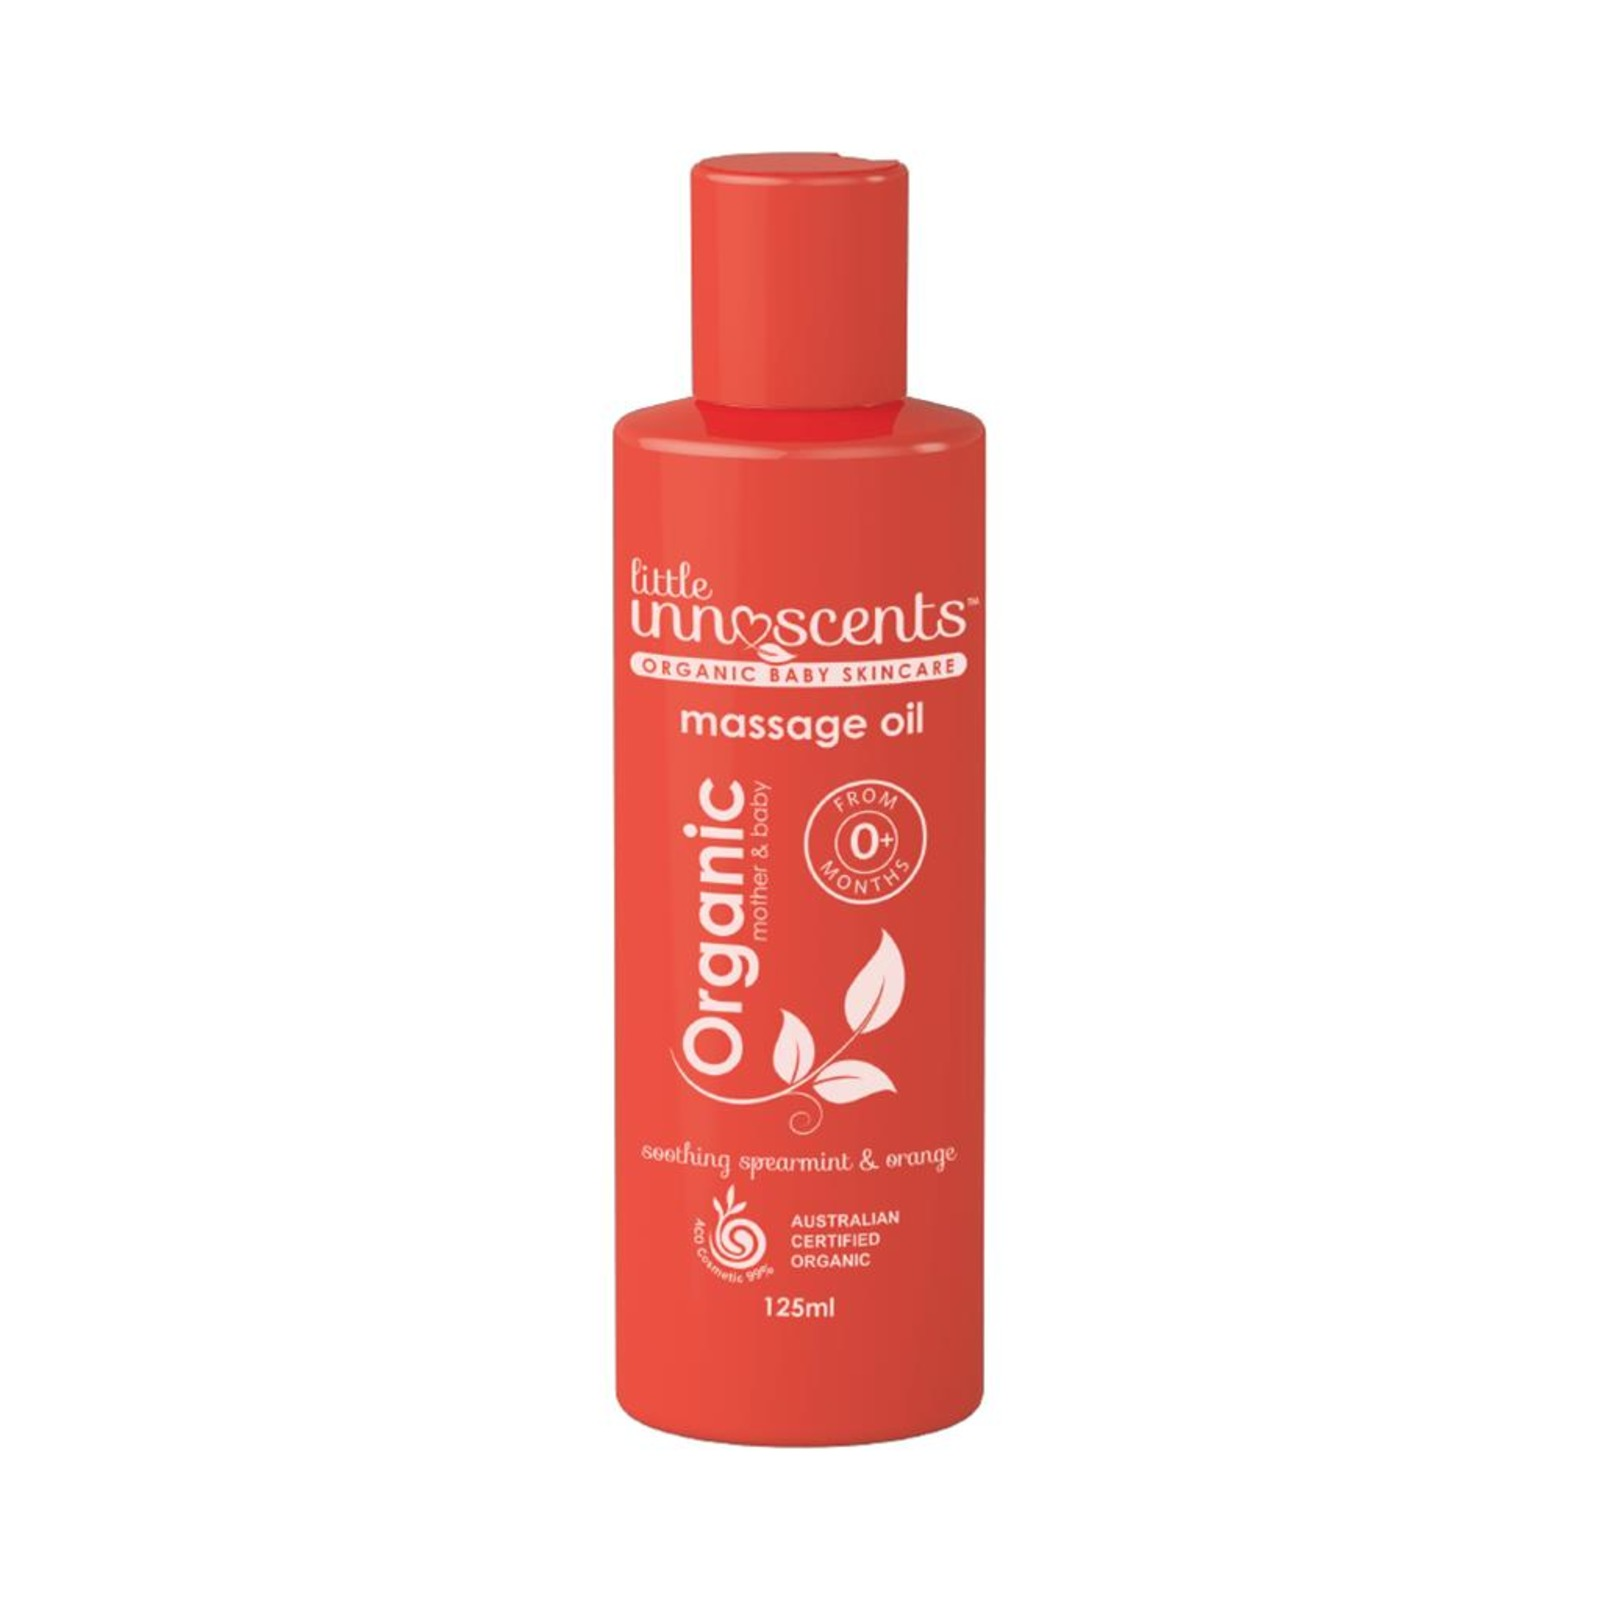 Little Innoscents Massage Oil